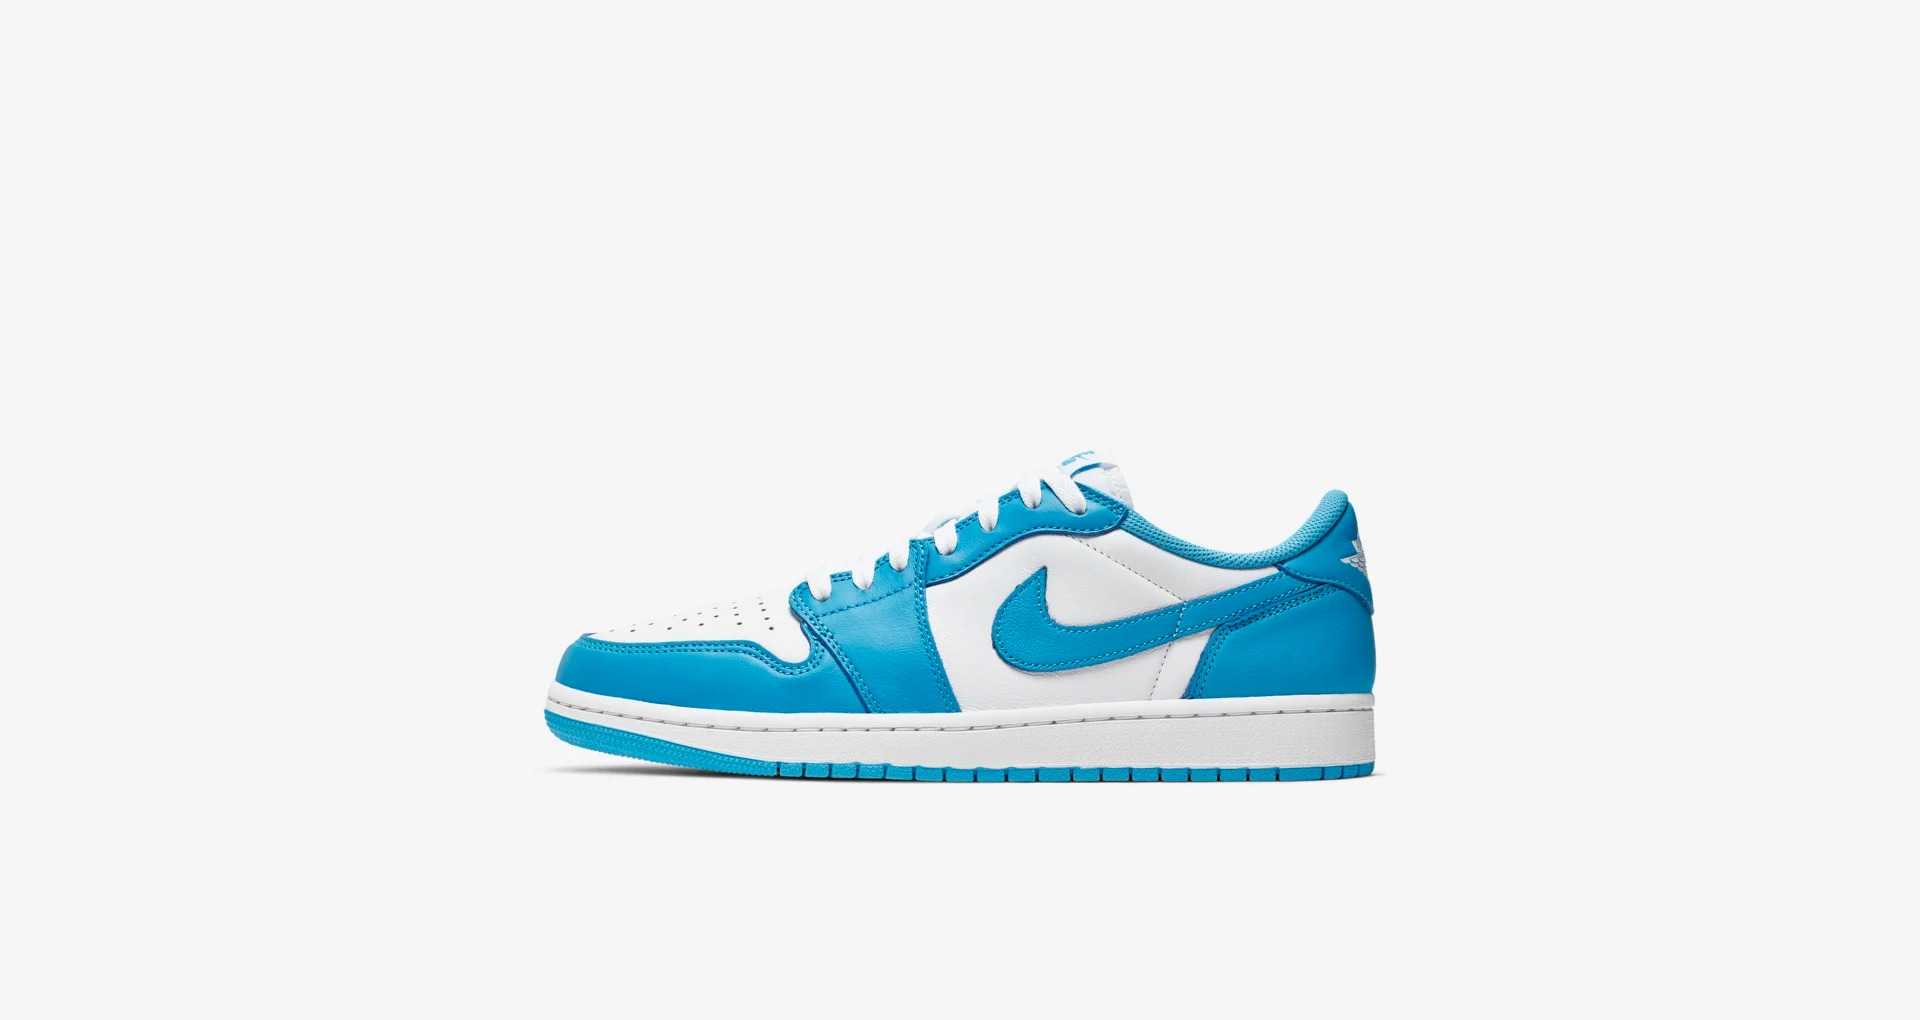 CJ7891 401 Air Jordan 1 Low SB Dark Powder Blue 2